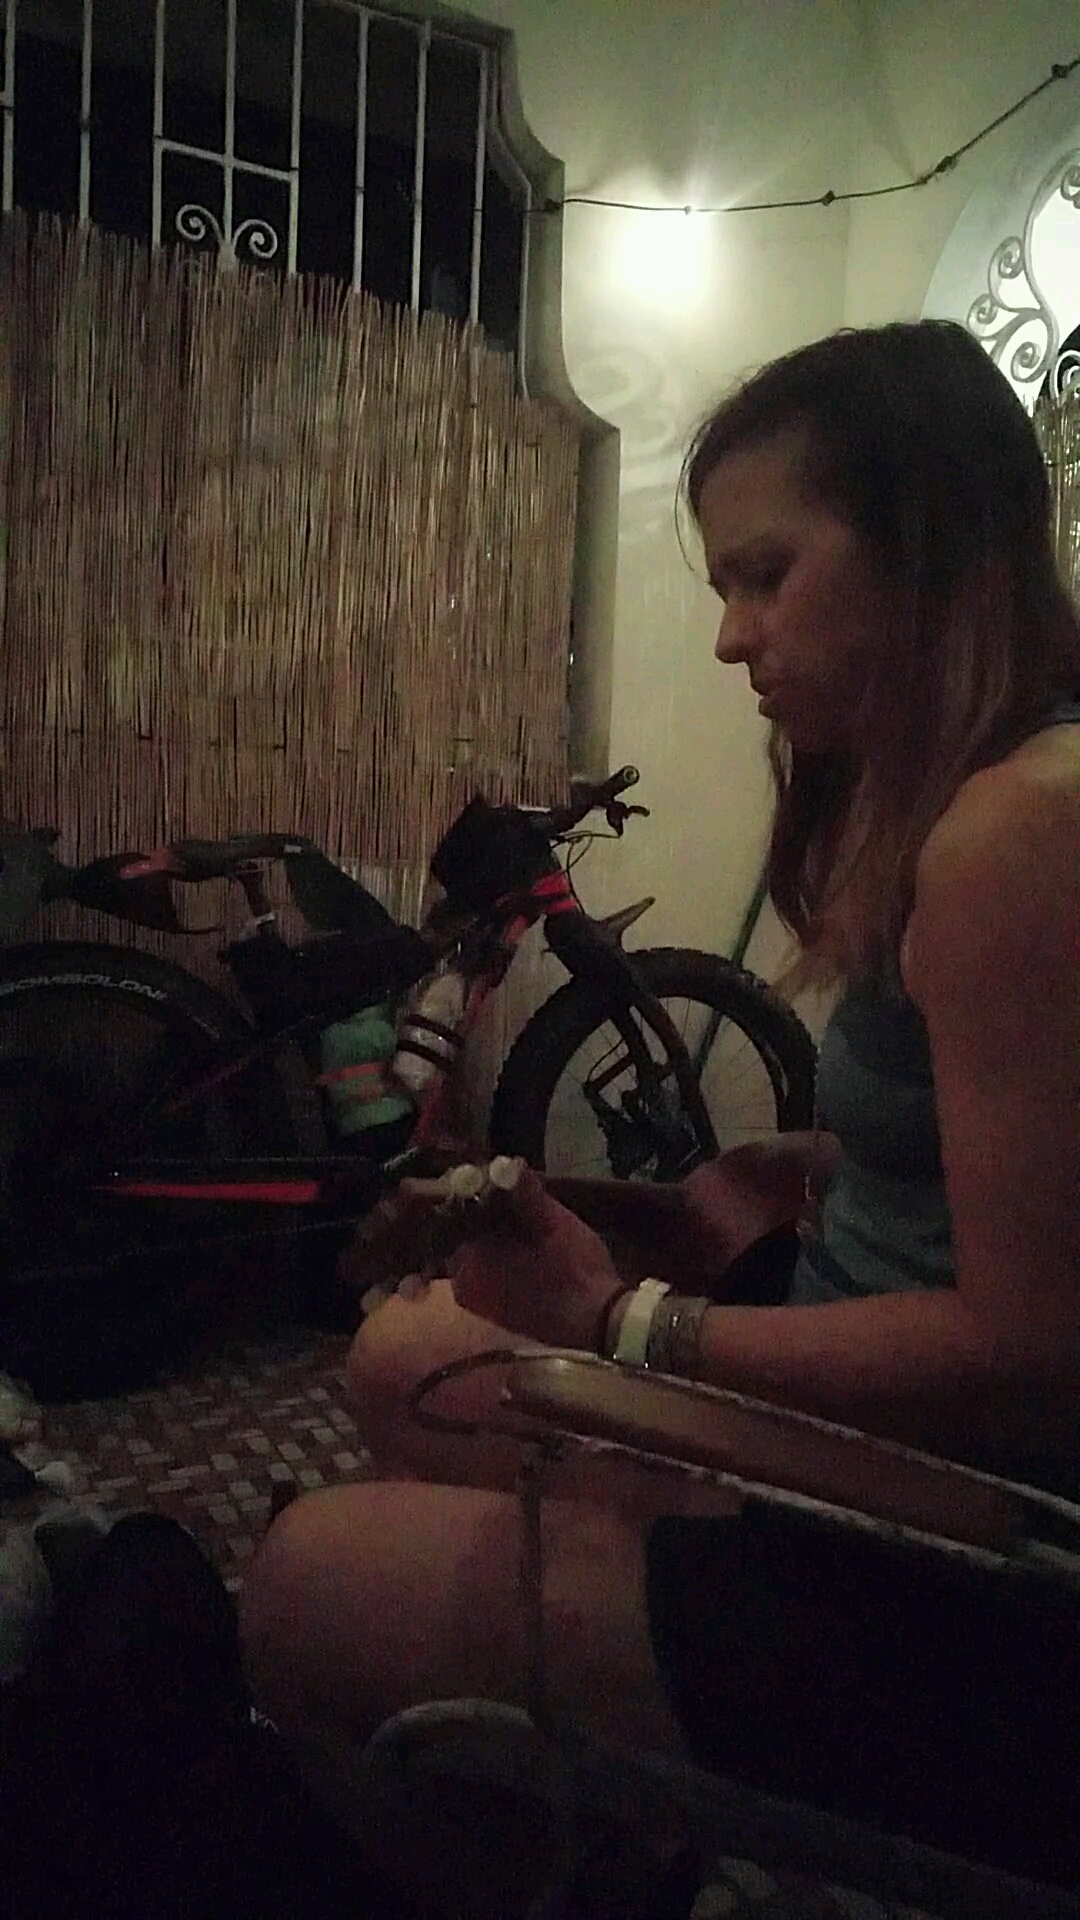 Playing ukulele on the patio as the rain pours down outside.